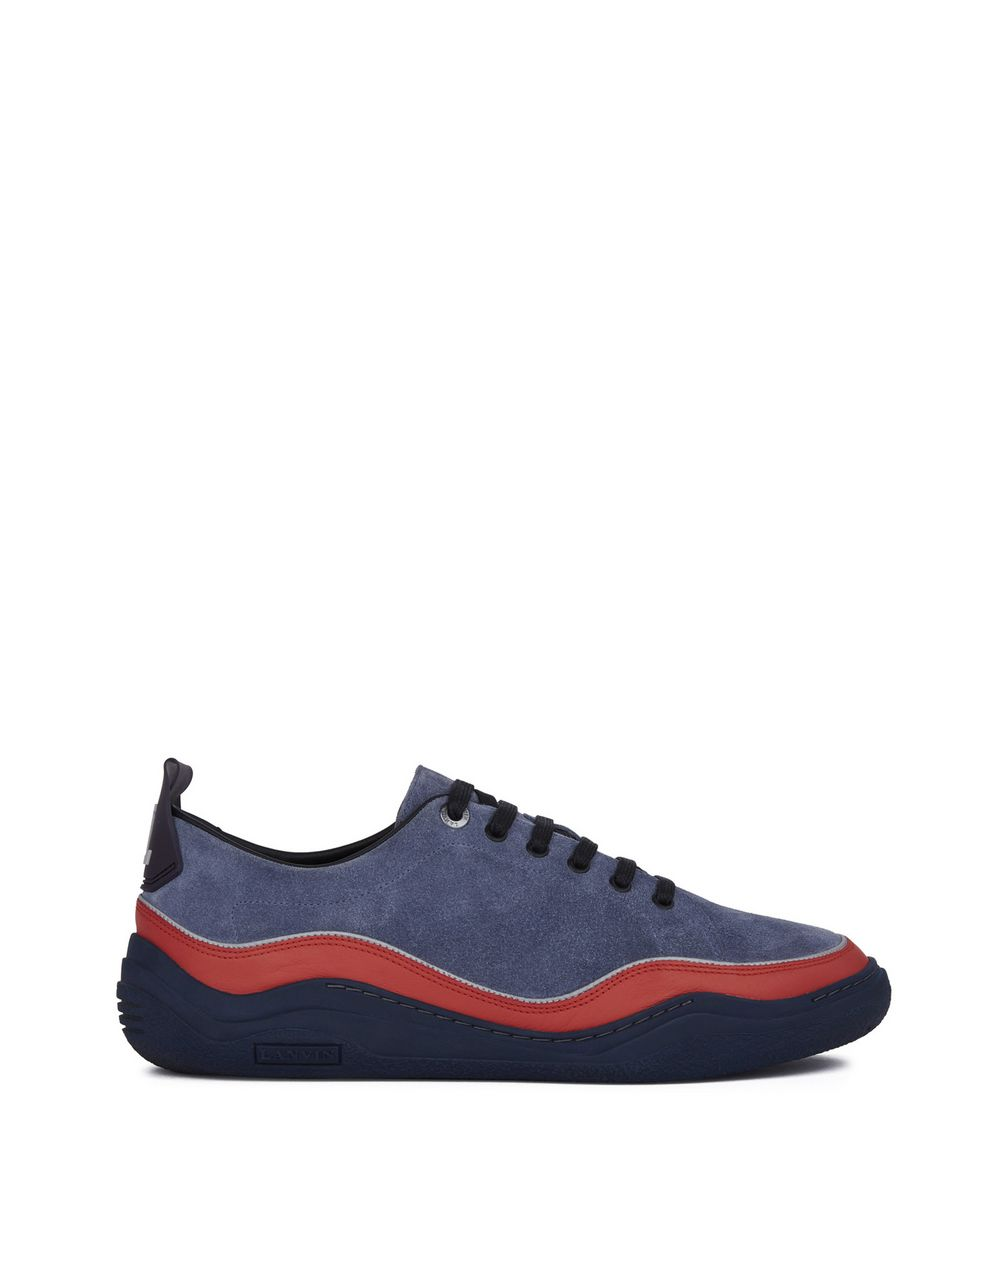 SUEDE CALFSKIN LEATHER DIVING SNEAKER - Lanvin